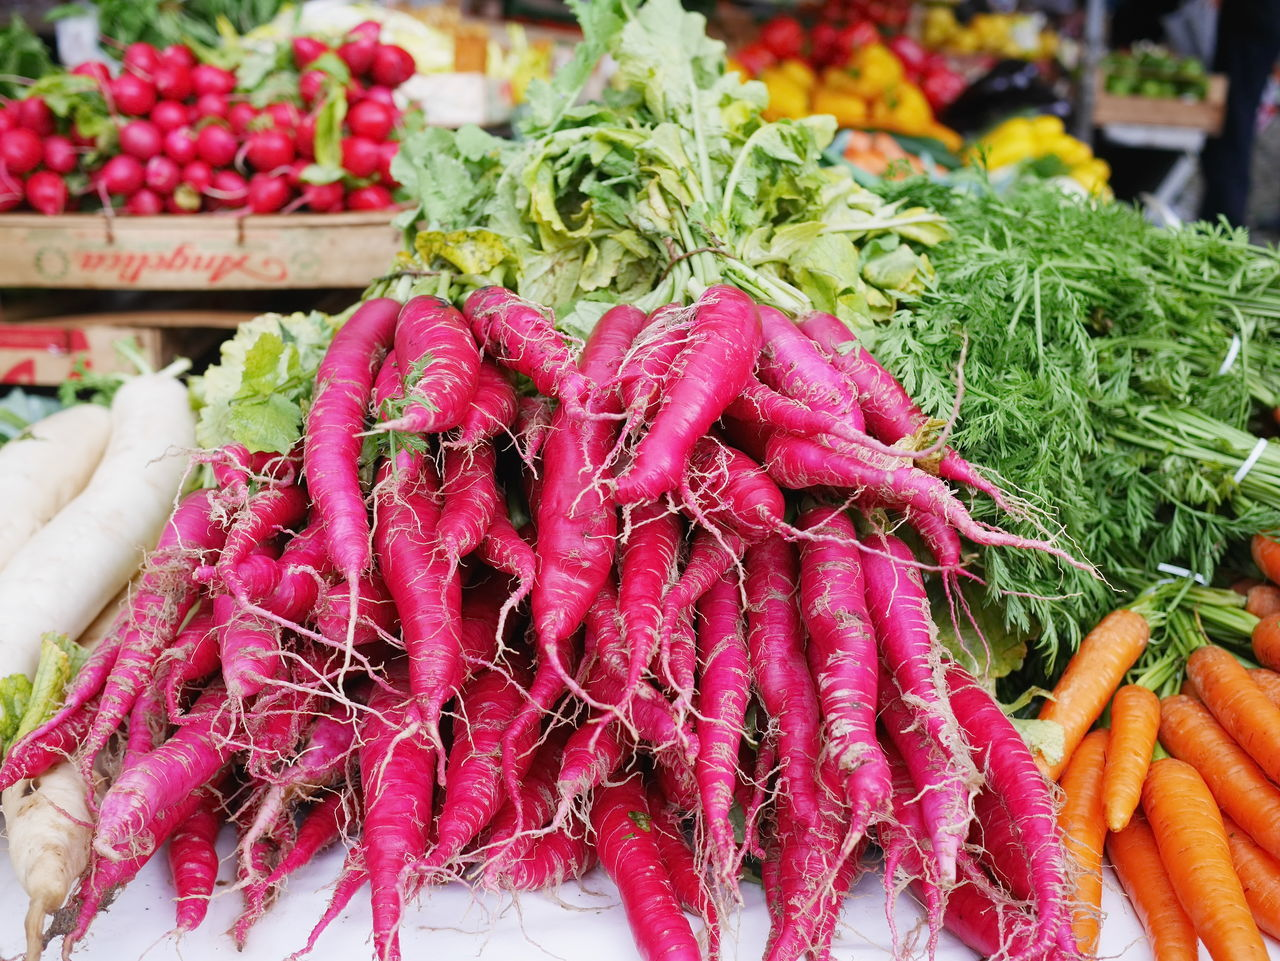 Adults Only Choice Close-up Common Beet Food Food And Drink For Sale Freshness Healthy Eating Healthy Lifestyle Holding Human Body Part Human Hand Large Group Of Objects Market Market Stall One Person Outdoors People Raw Food Real People Retail  Small Business Variation Vegetable